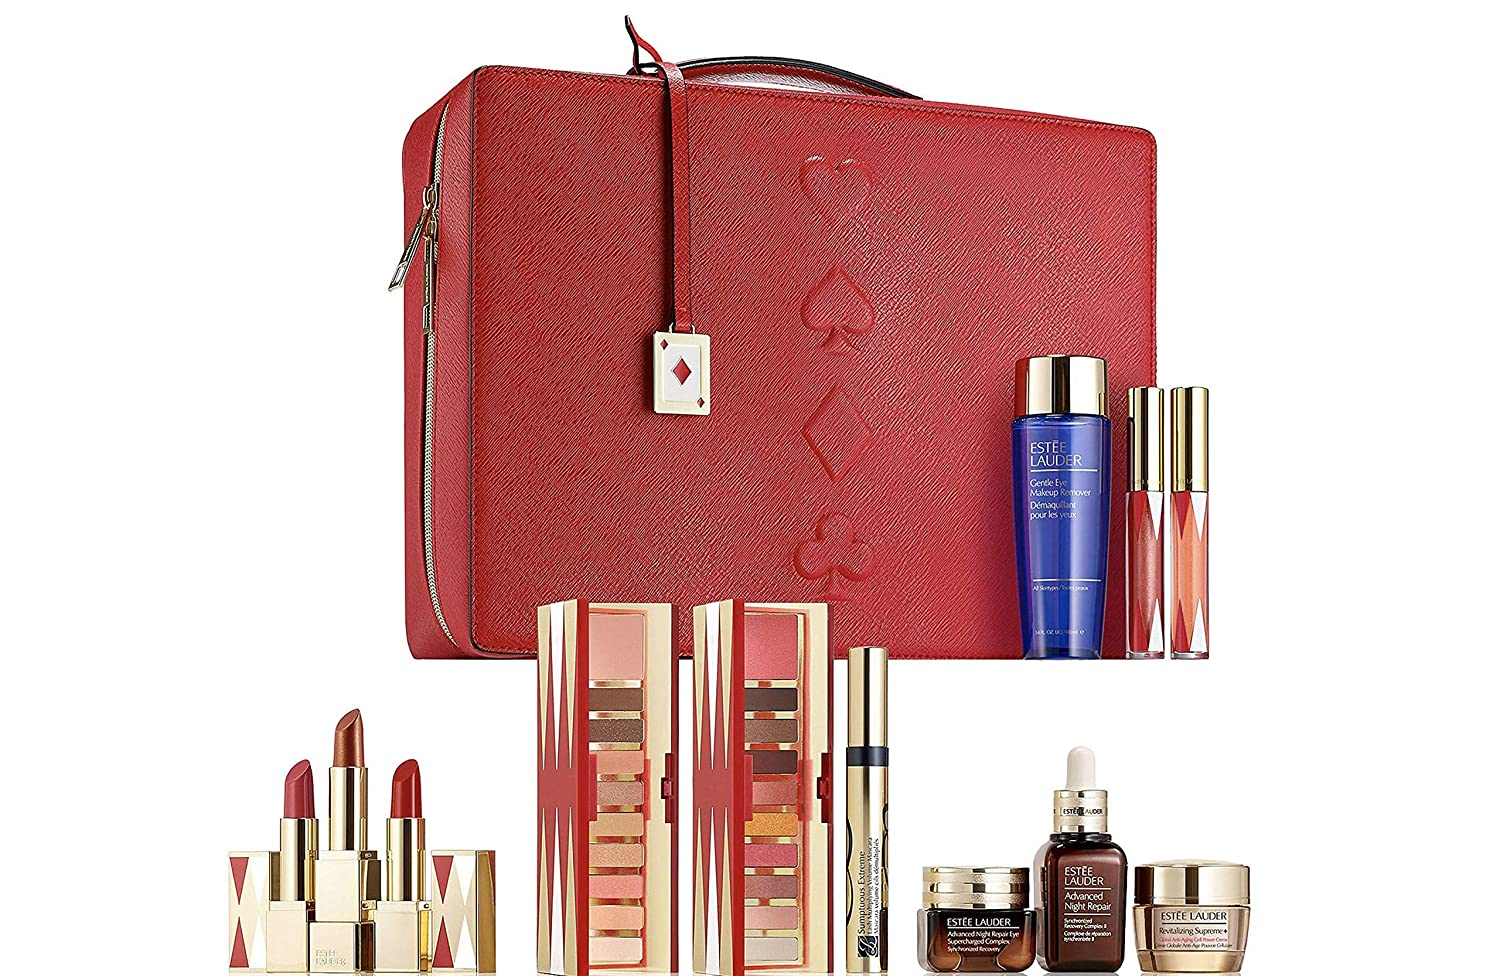 Estee Lauder 2019 Holiday Blockbuster Gift Set $455+ Value Warm Color